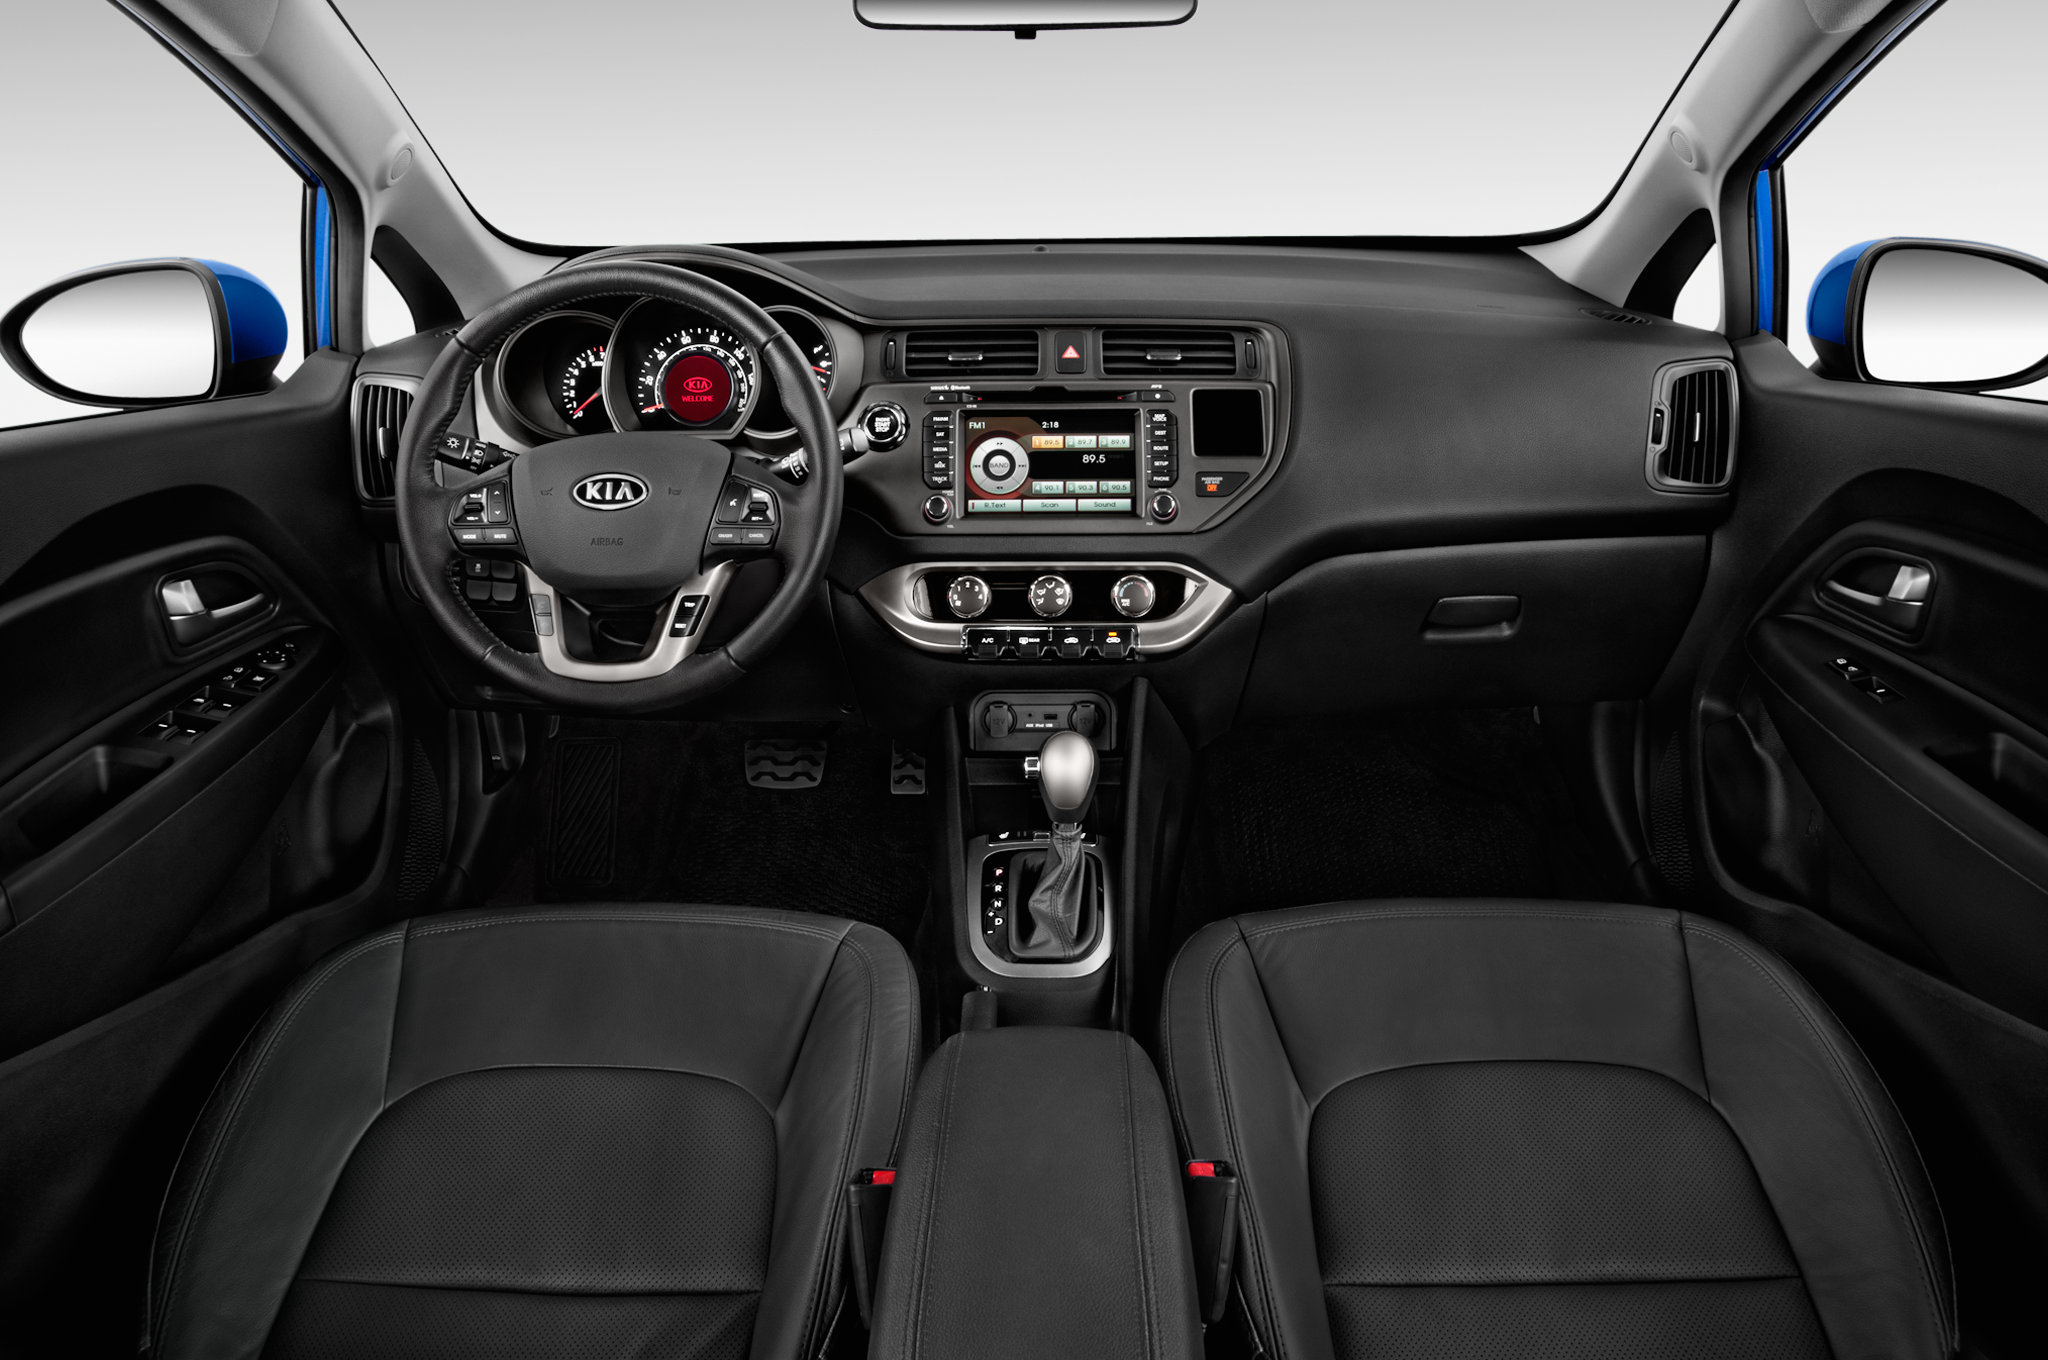 Slot in kia rio dash puppy power slots the interior of the kia rio features a nicely contoured dashboard with a generous binnacle over the a slot in the center stack holds parking passes or fandeluxe Image collections